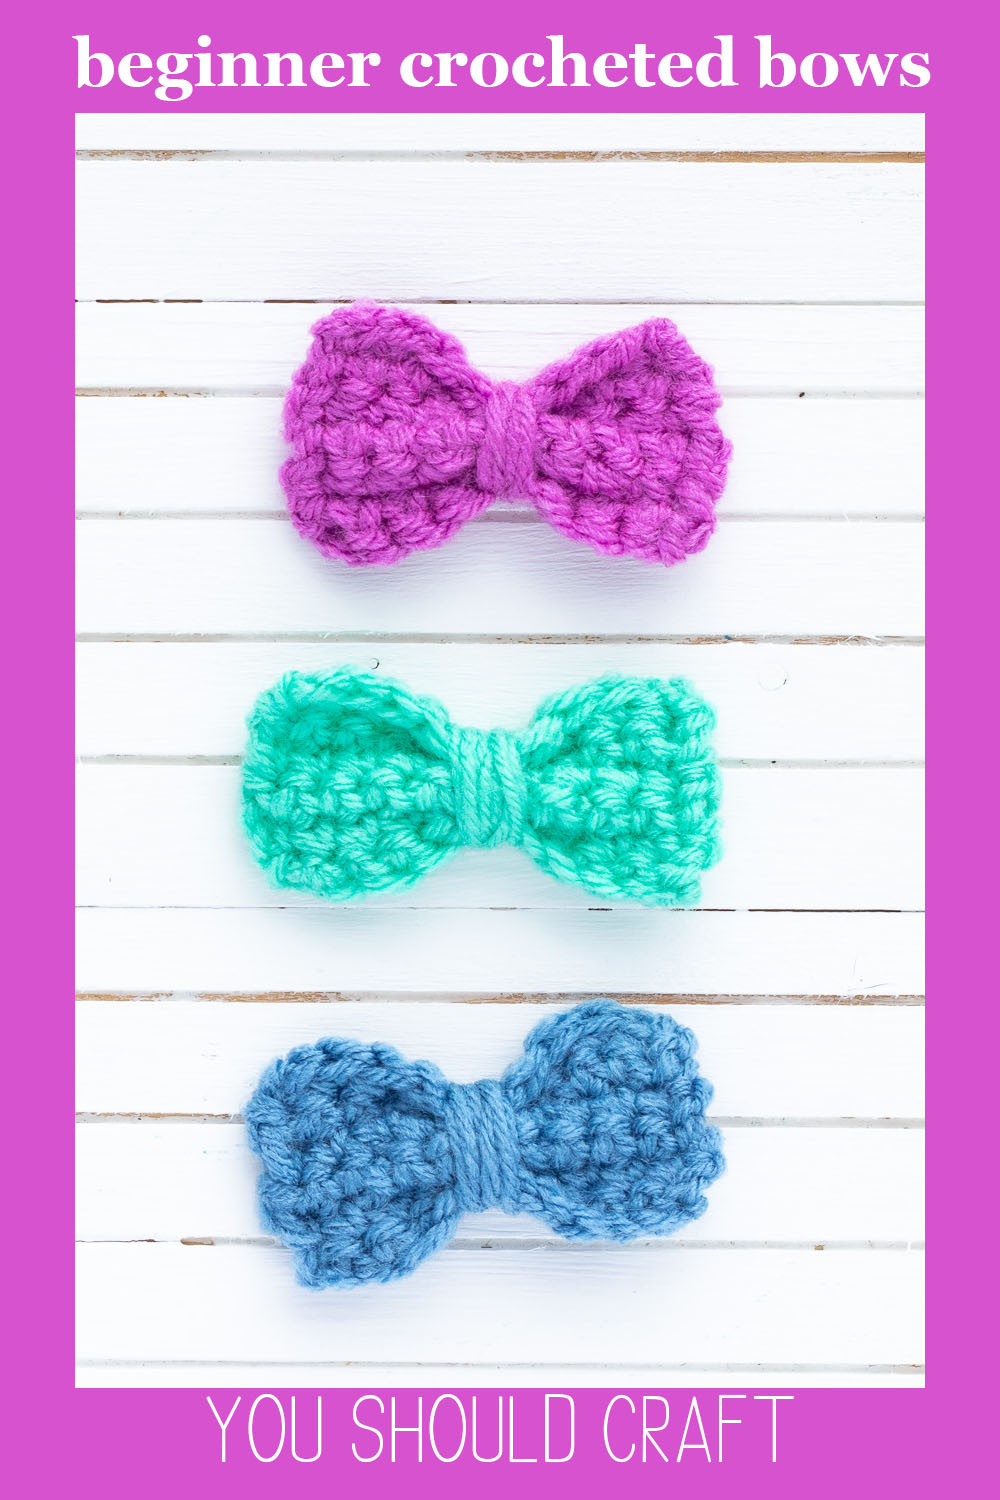 """three small crochet bows in purple, mint, and blue, with the text """"beginner crocheted bows - you should craft"""""""